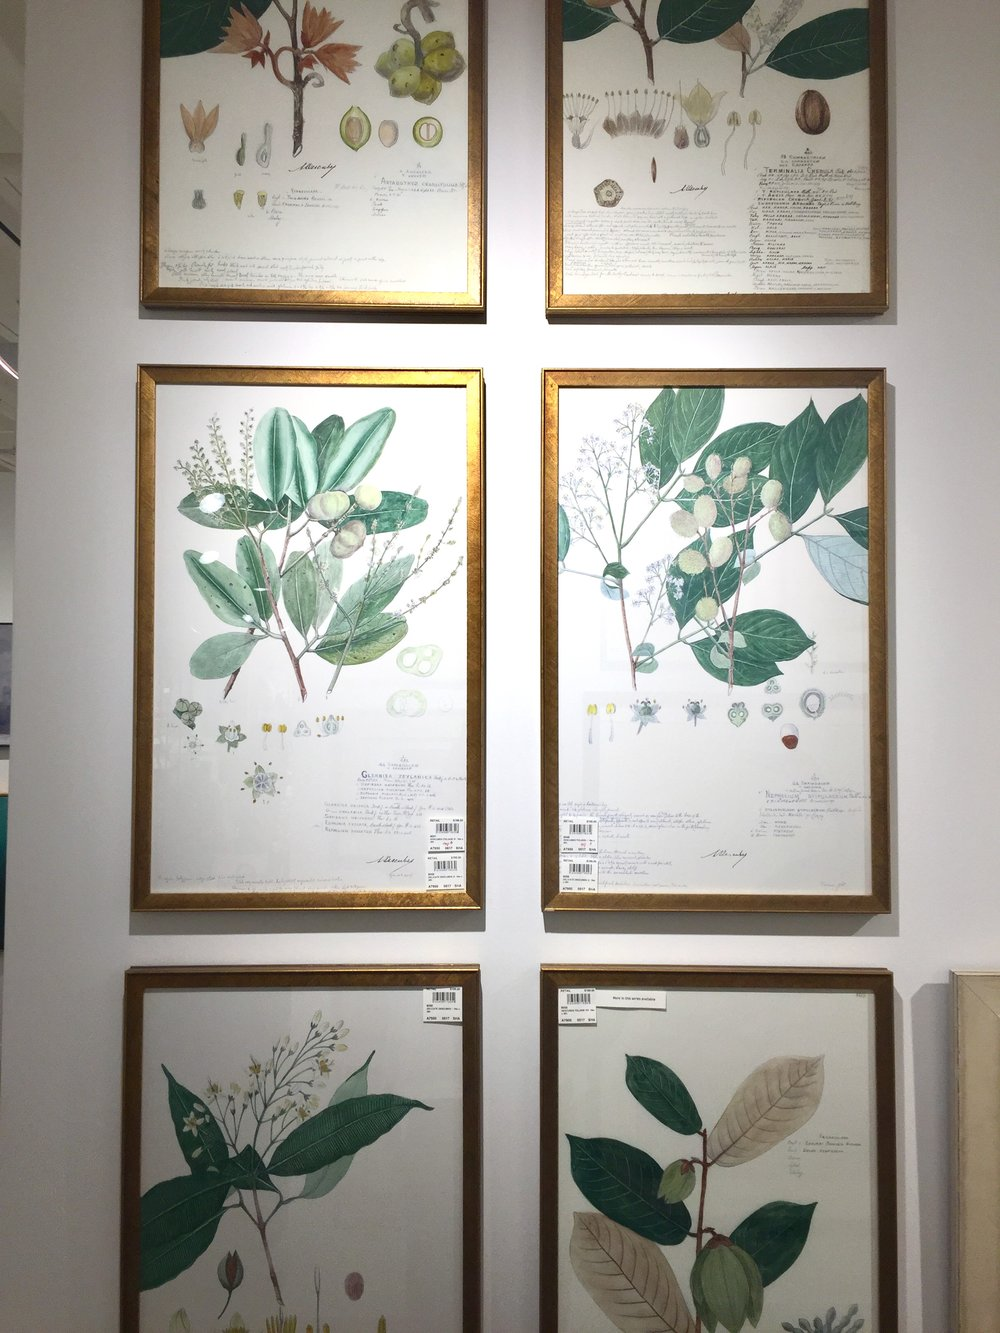 I want these botanicals for my bedroom. The greens are perfect.